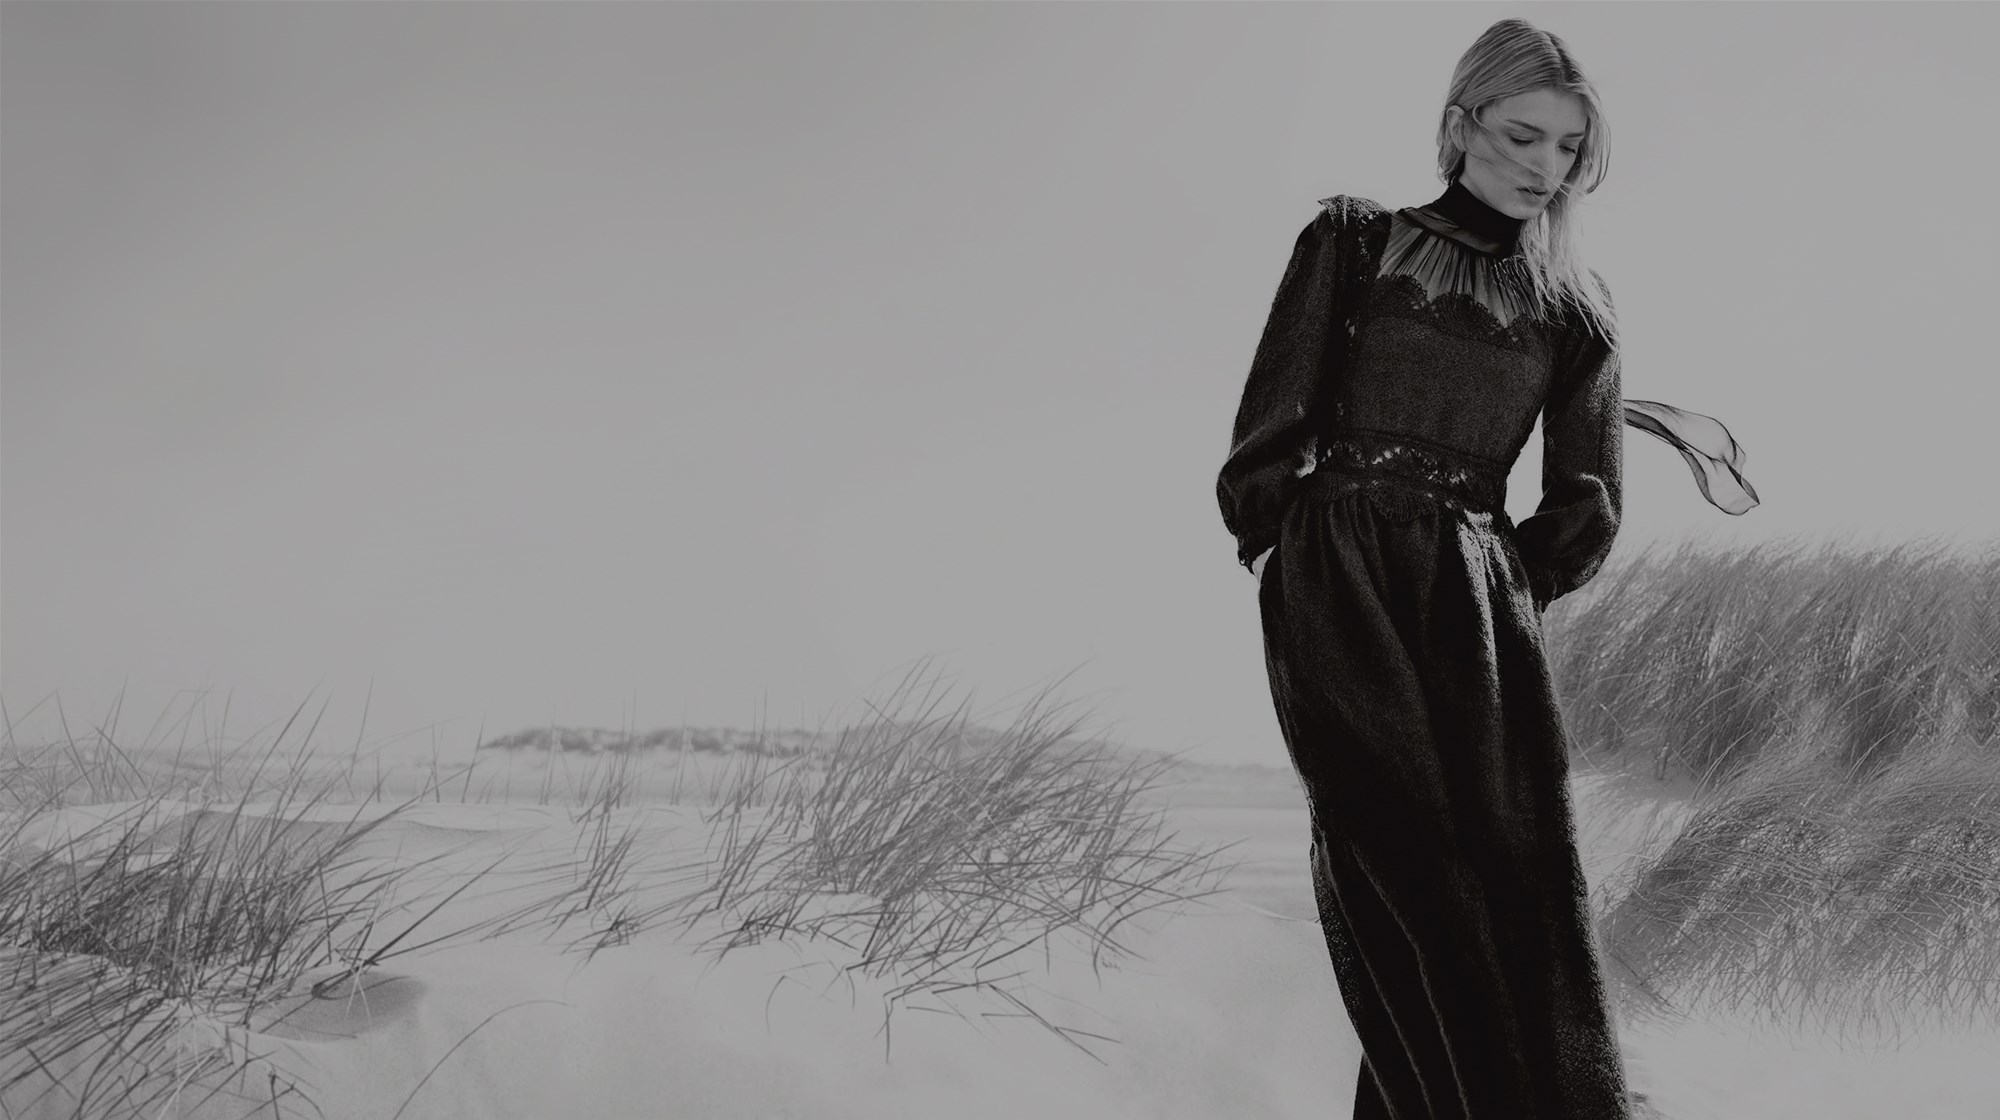 Black and white image of a model posing at a stunning beach location with sand dunes